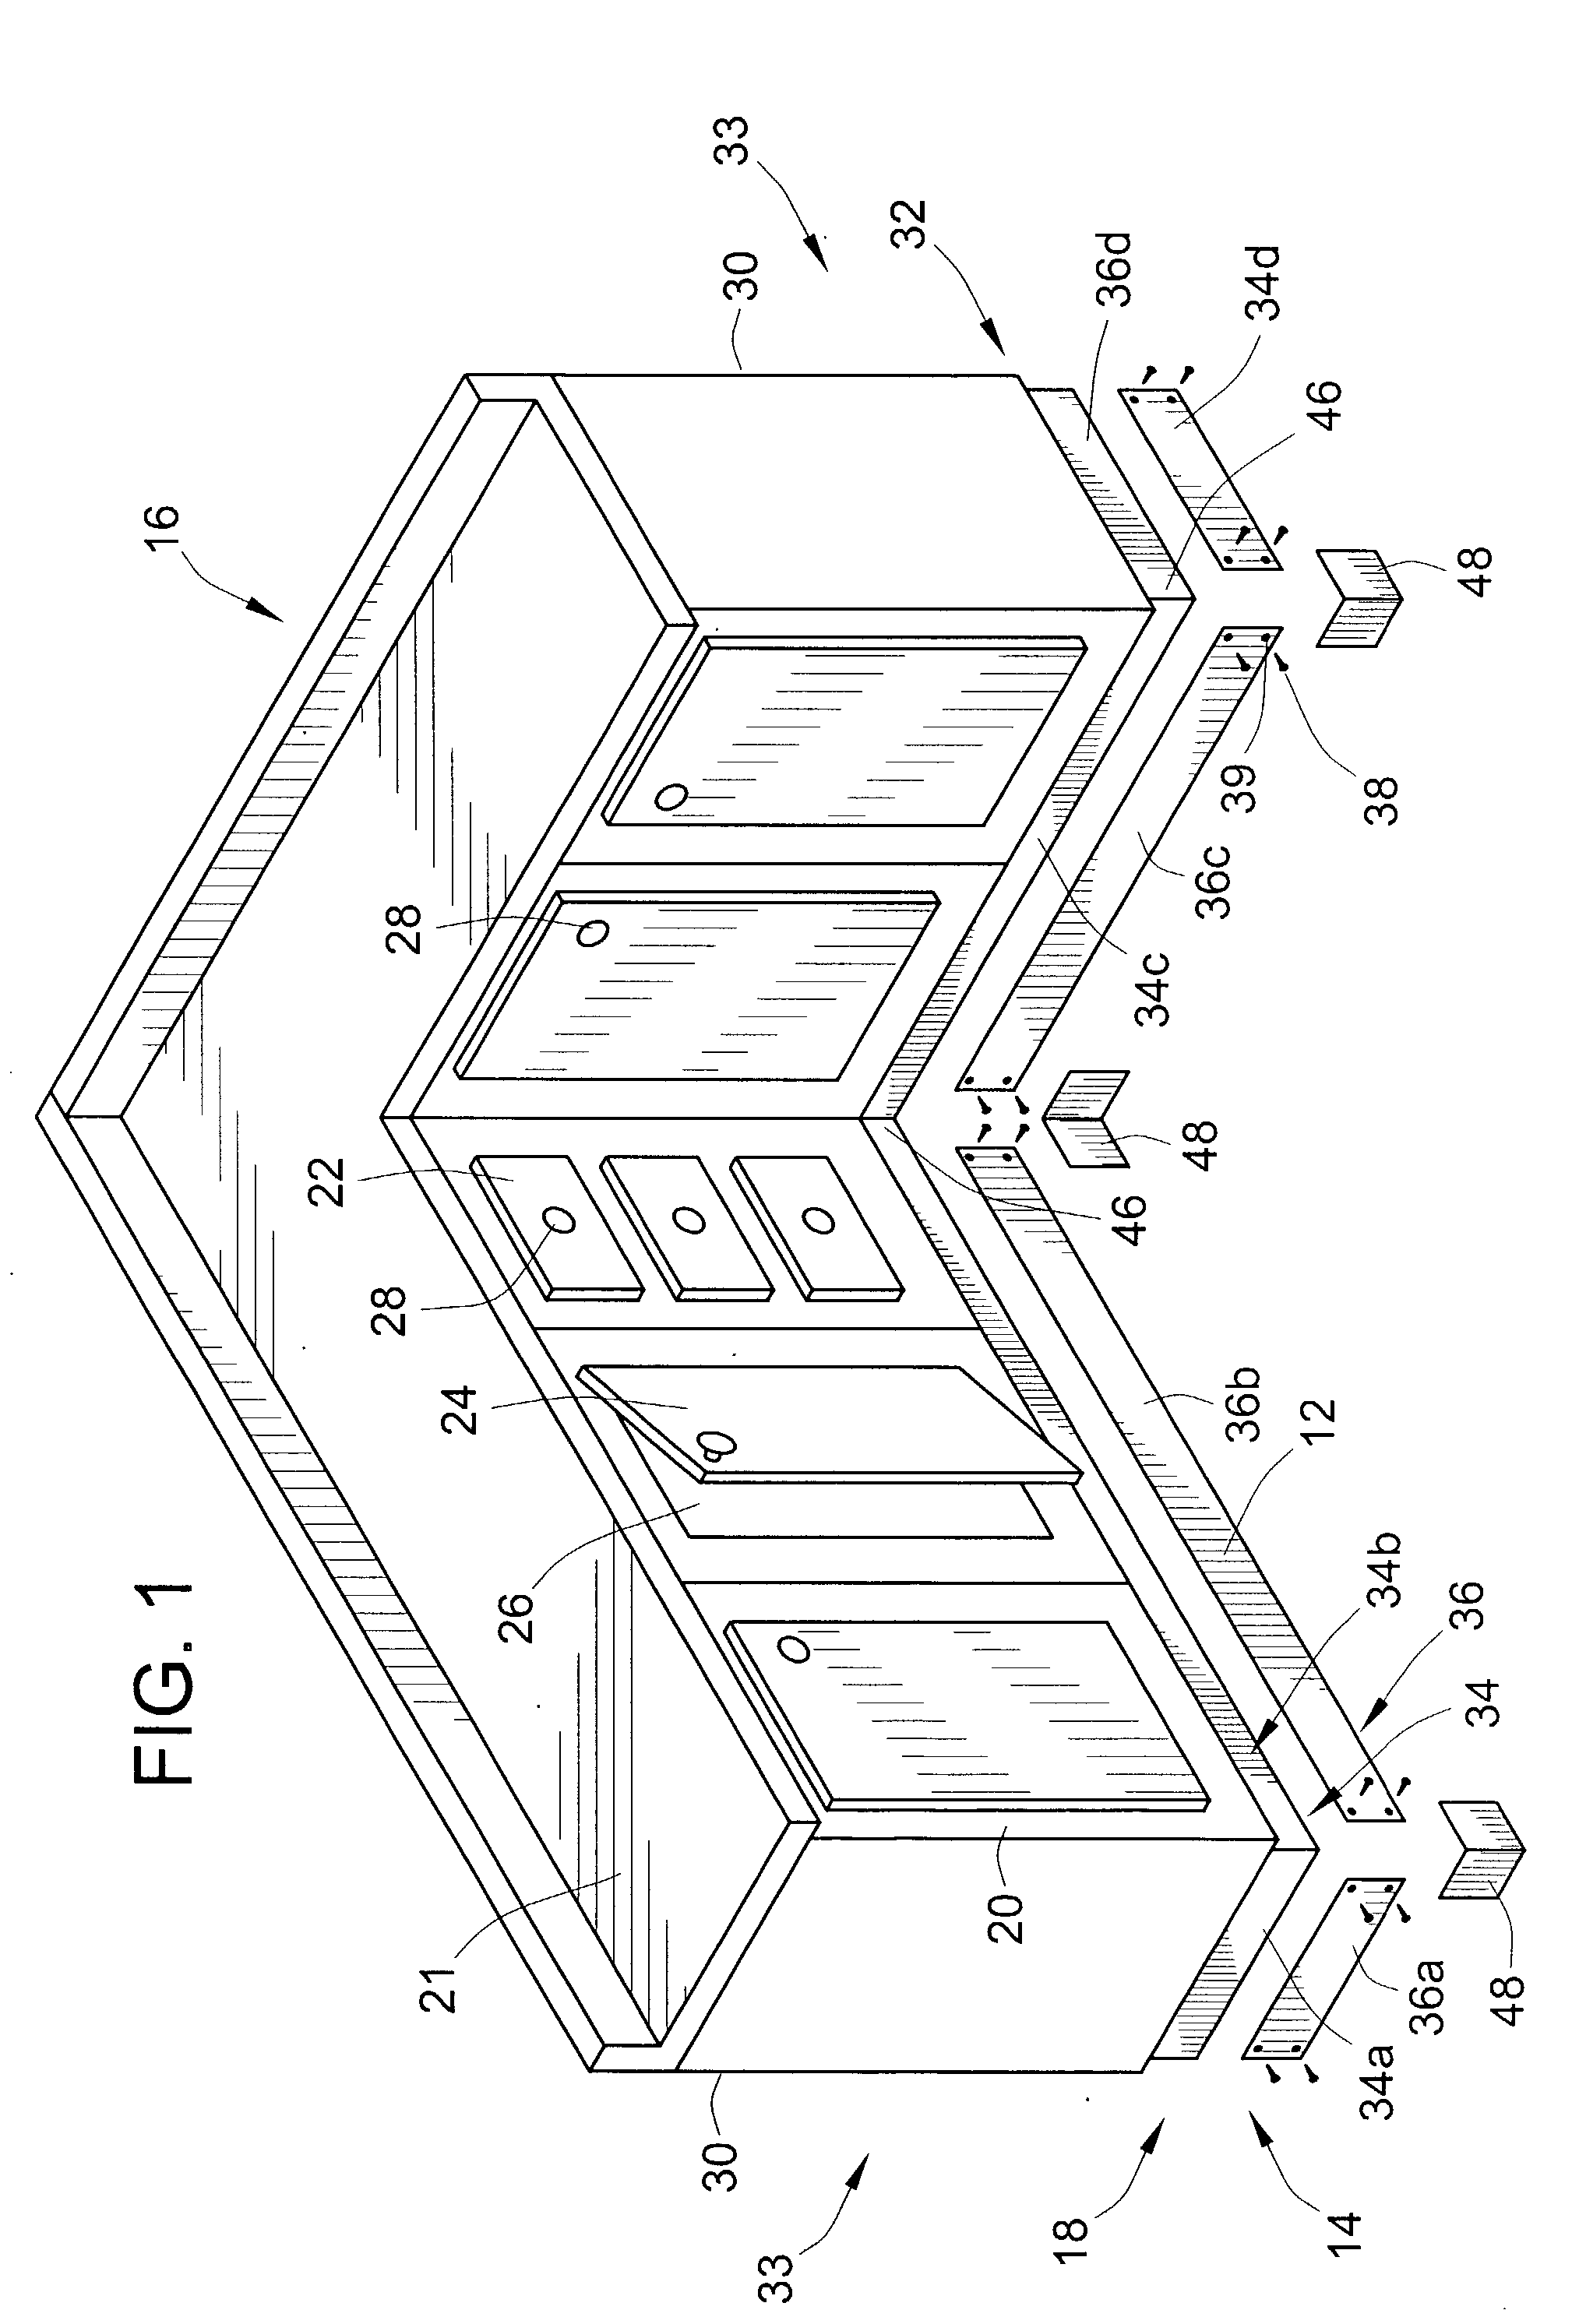 Kick Plates For Cabinets Patent Us20030222552 Metallic Toe Kick For Wooden Cabinets